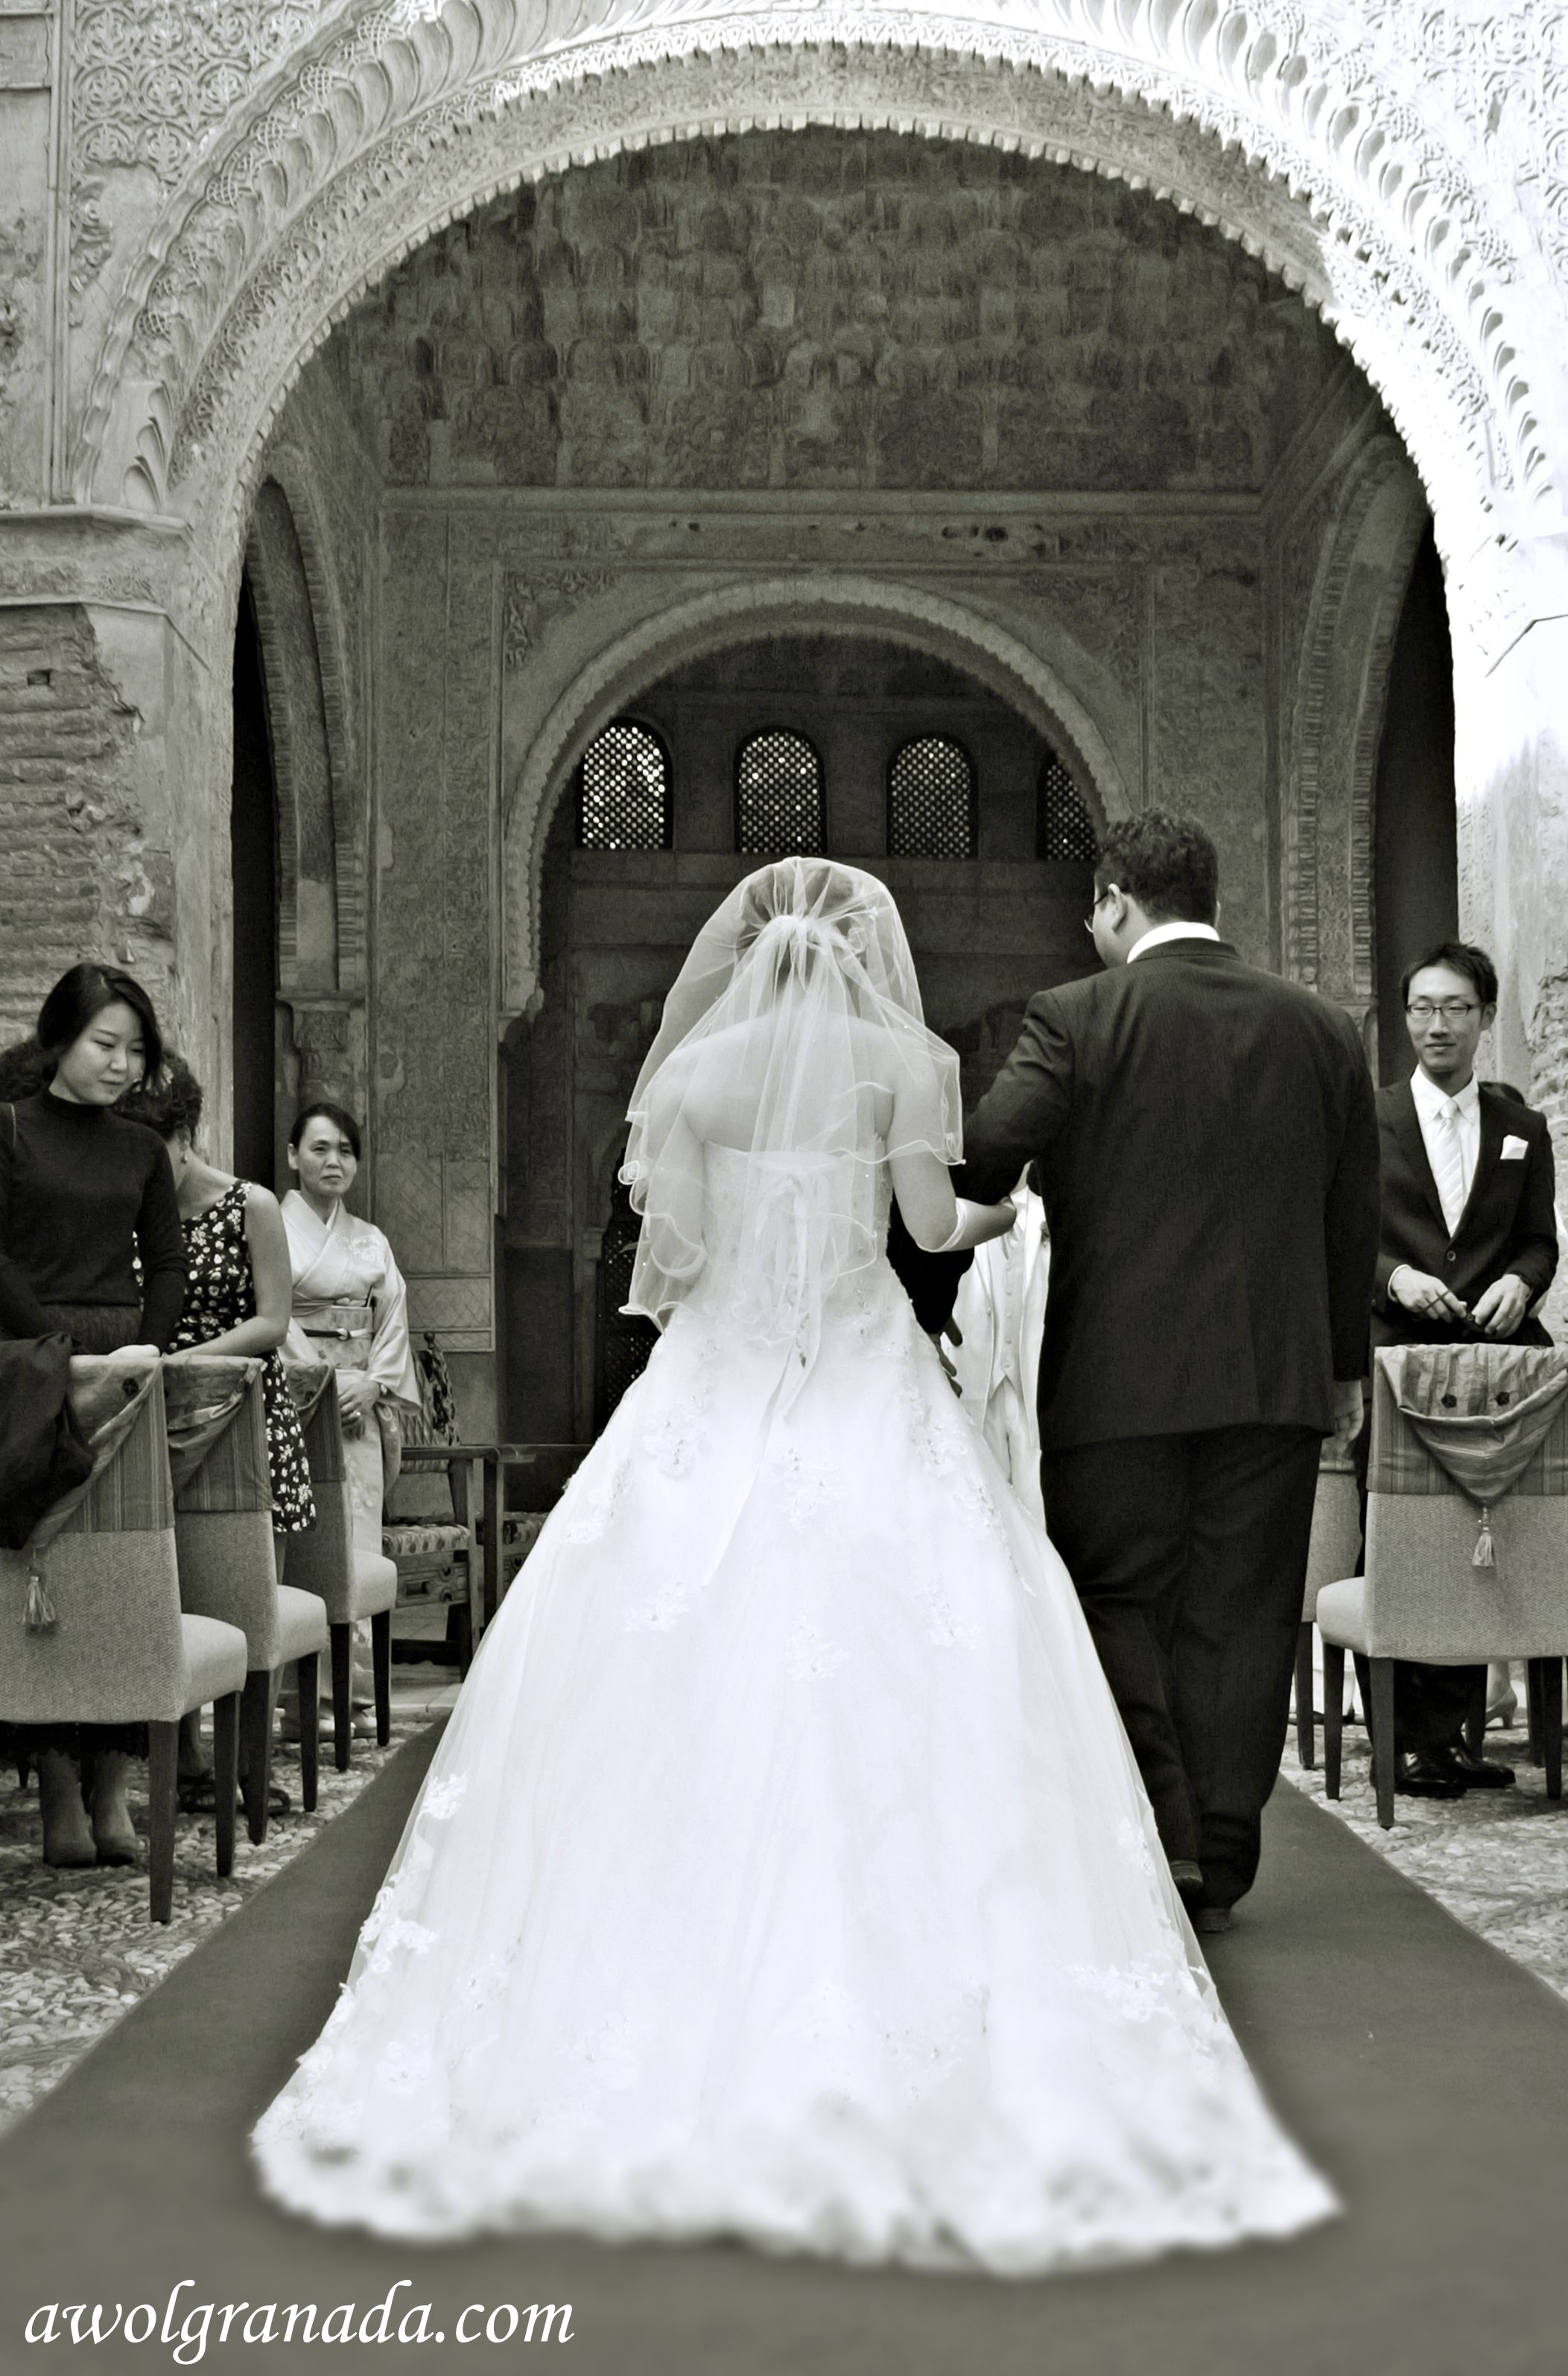 Japanese wedding blessings - Bride Walking Down The Aisle From The Back Wedding Granada Spain